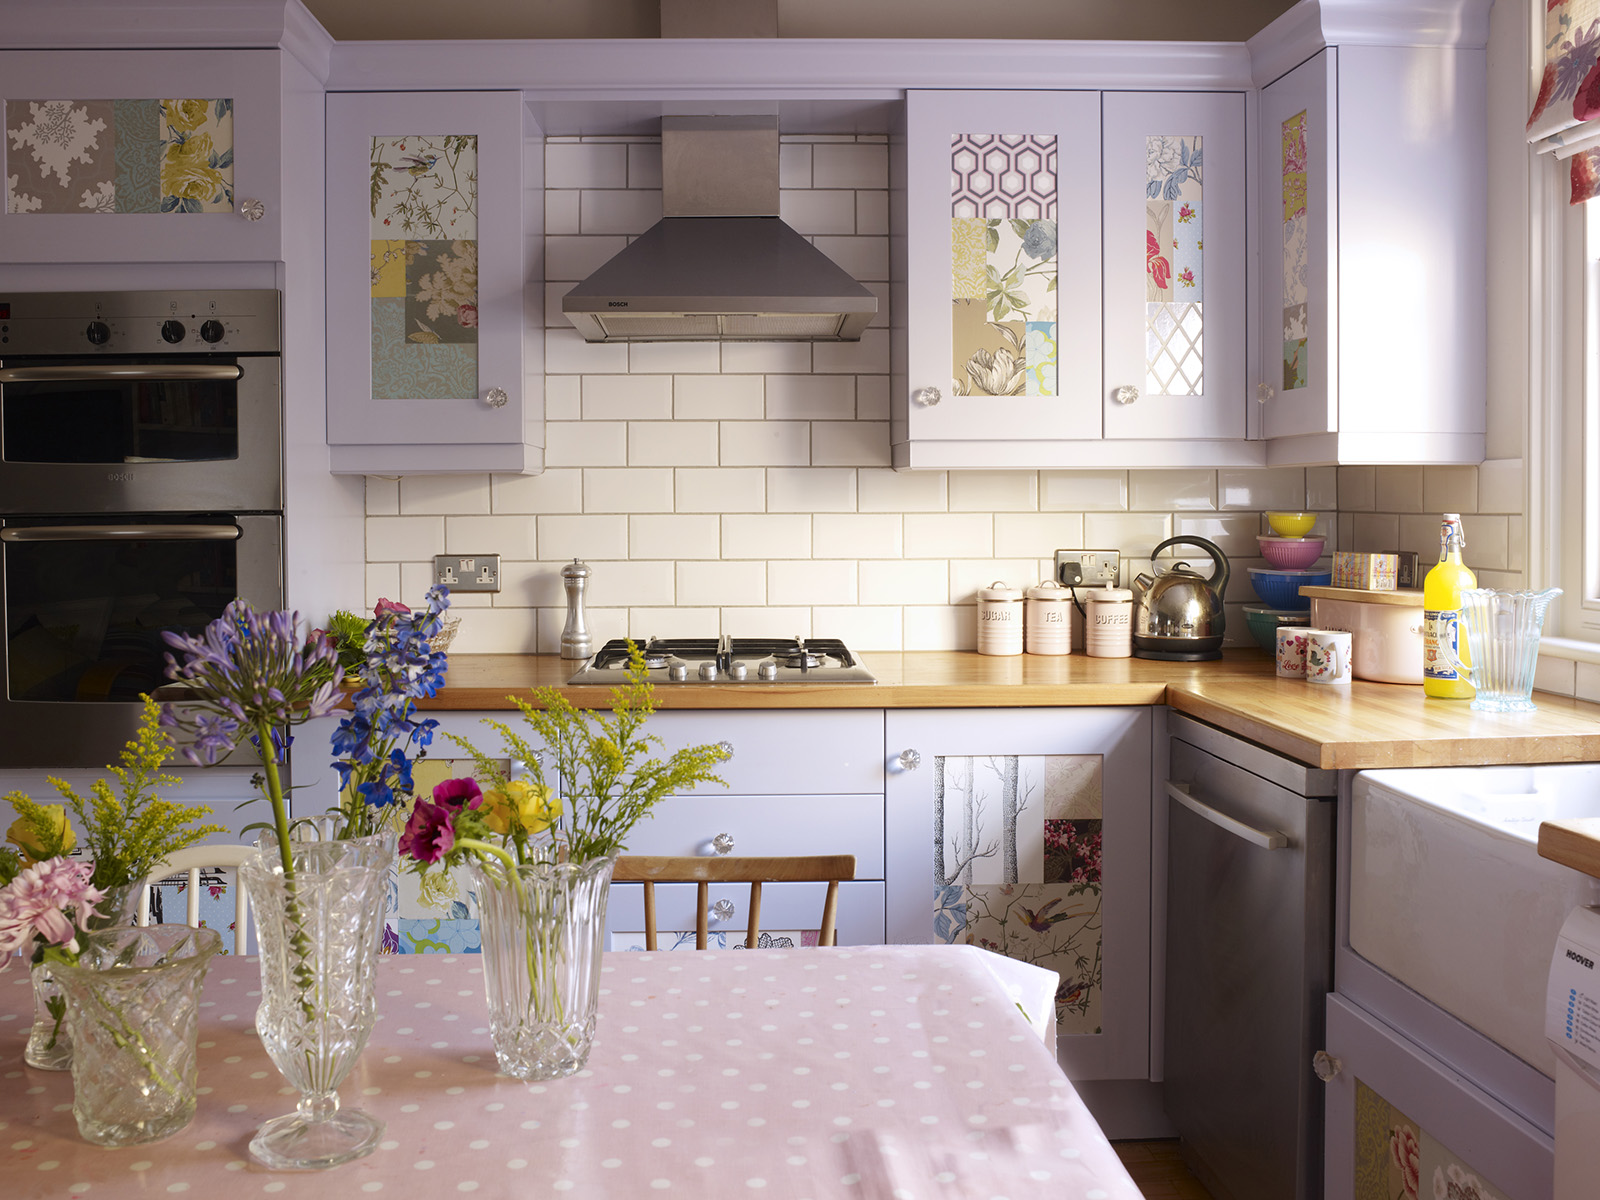 Interior Designers Sophie Robinson talks kitchen update Pastel kitchen units and patchwork panelled doors